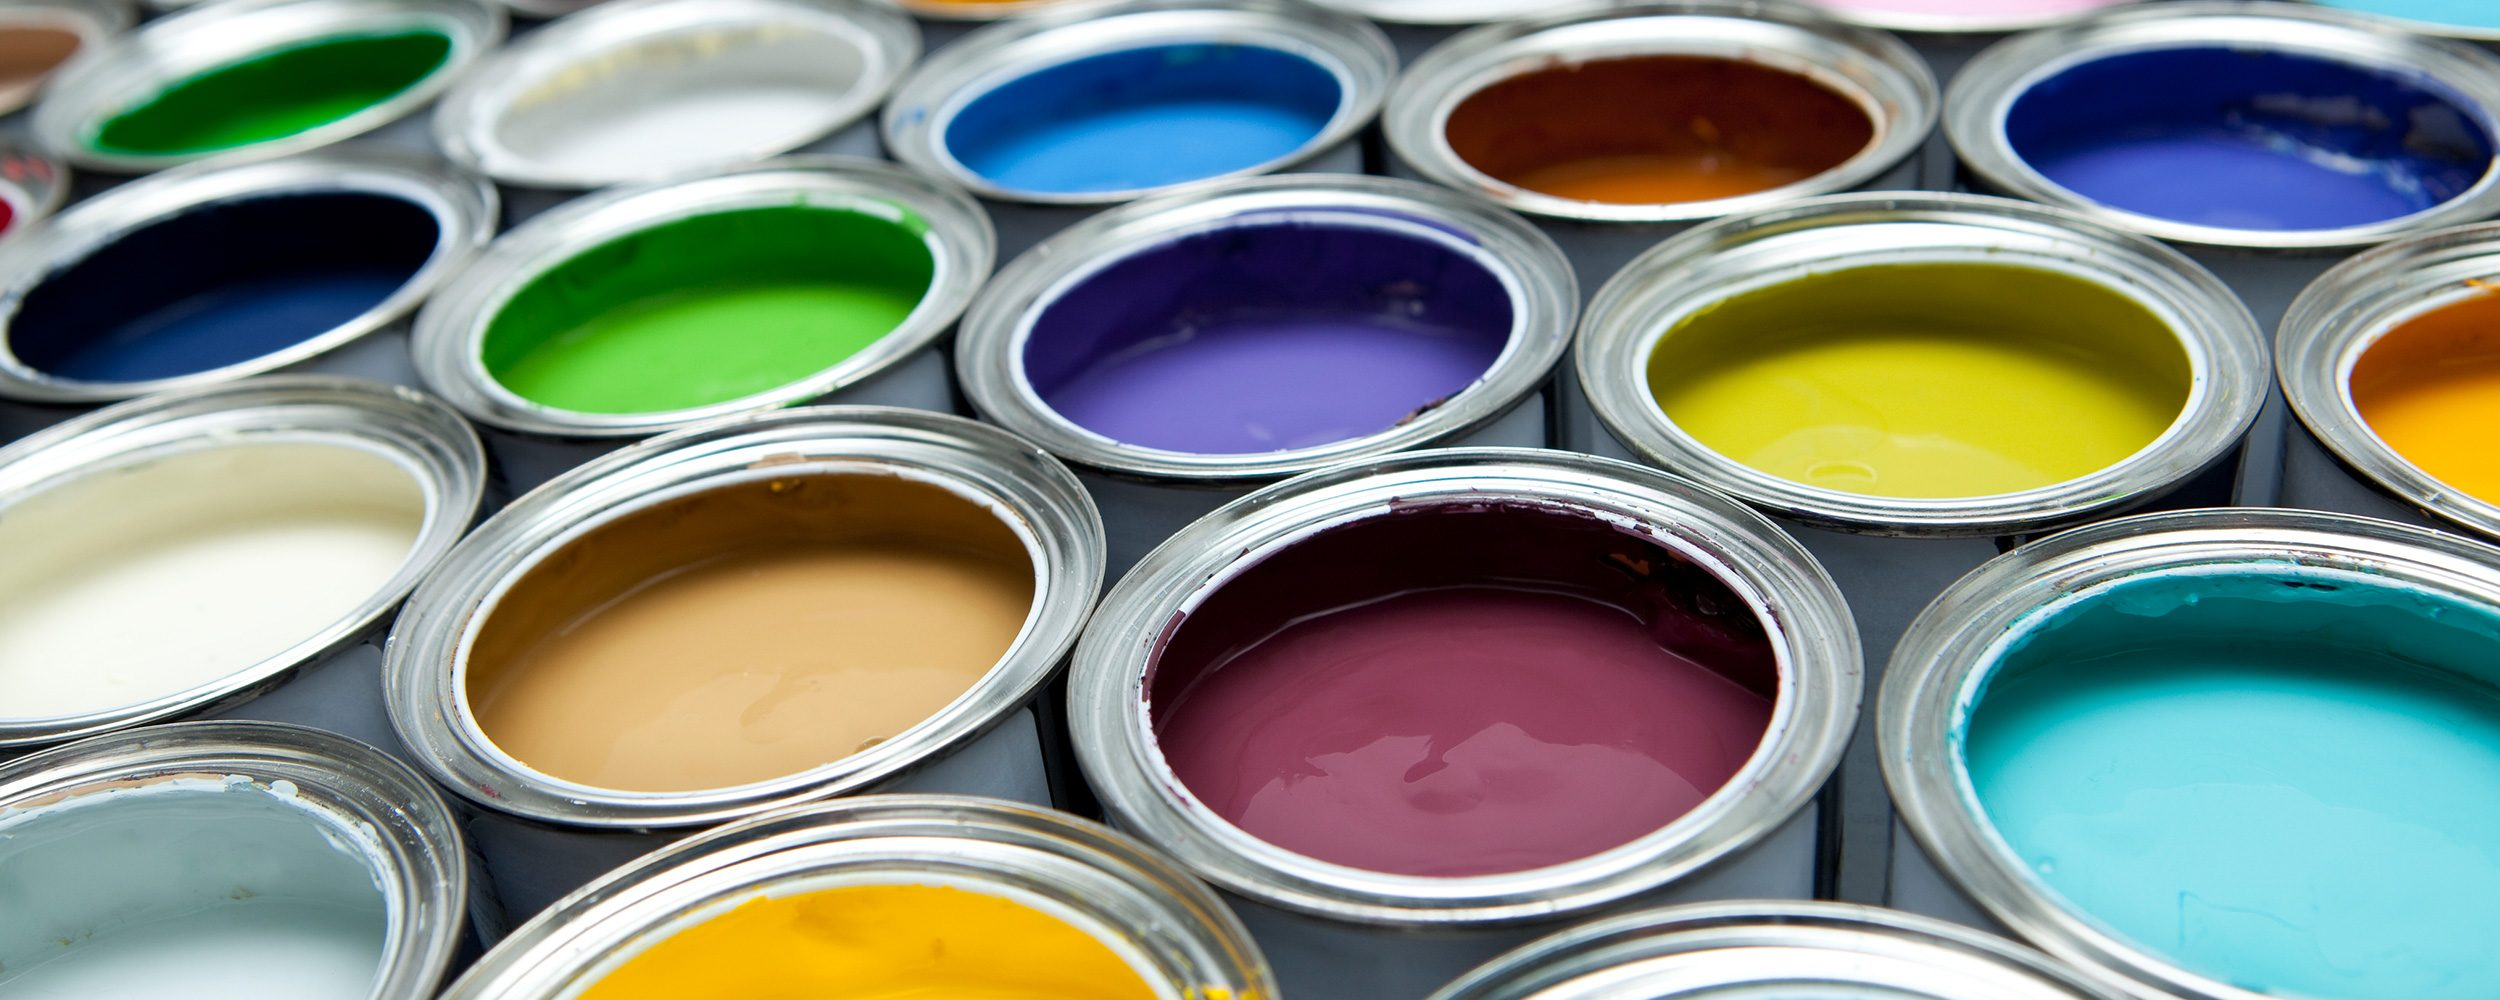 Paints & Inks - Fileder Filter Systems